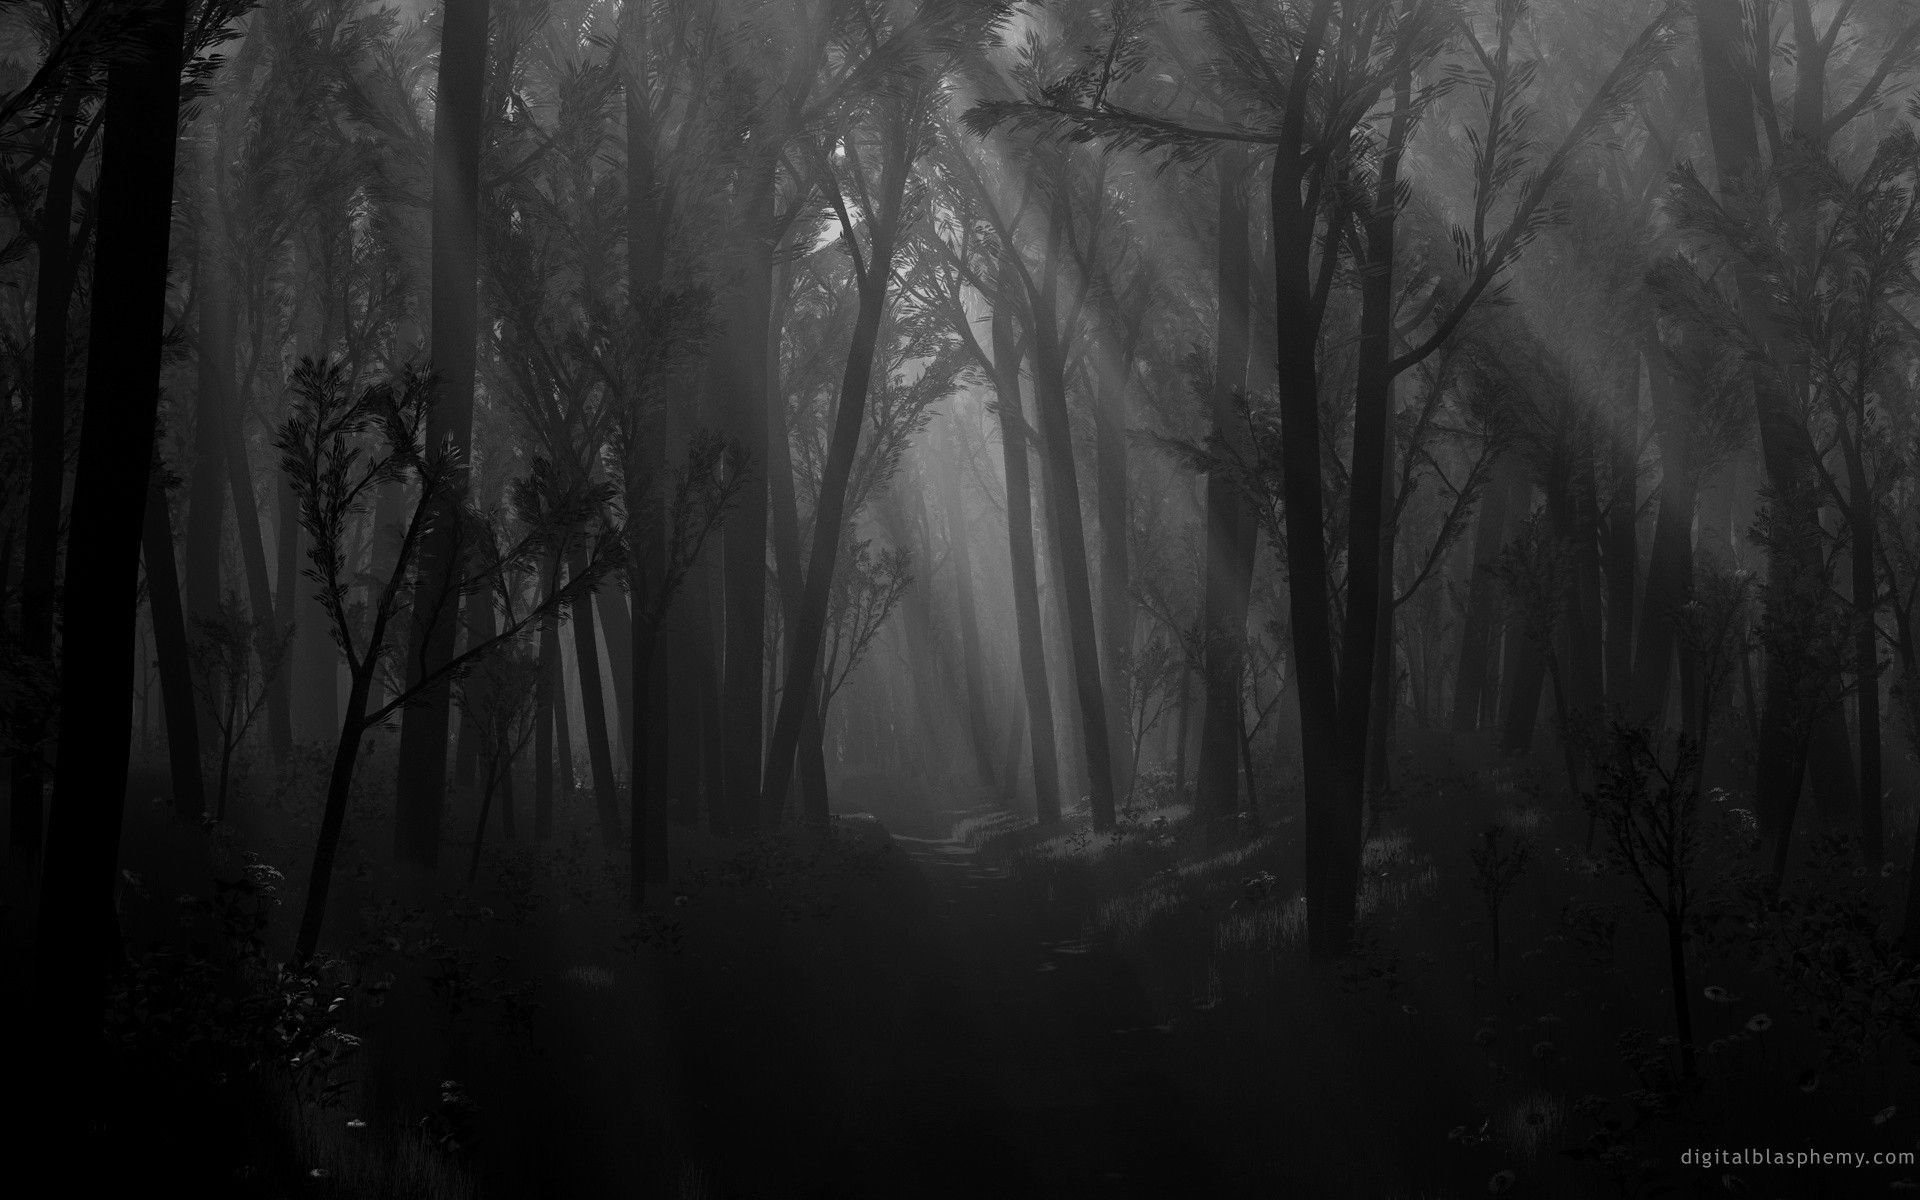 Drawn jungle spooky Wallpaper Cave Forest #8775879 Dark